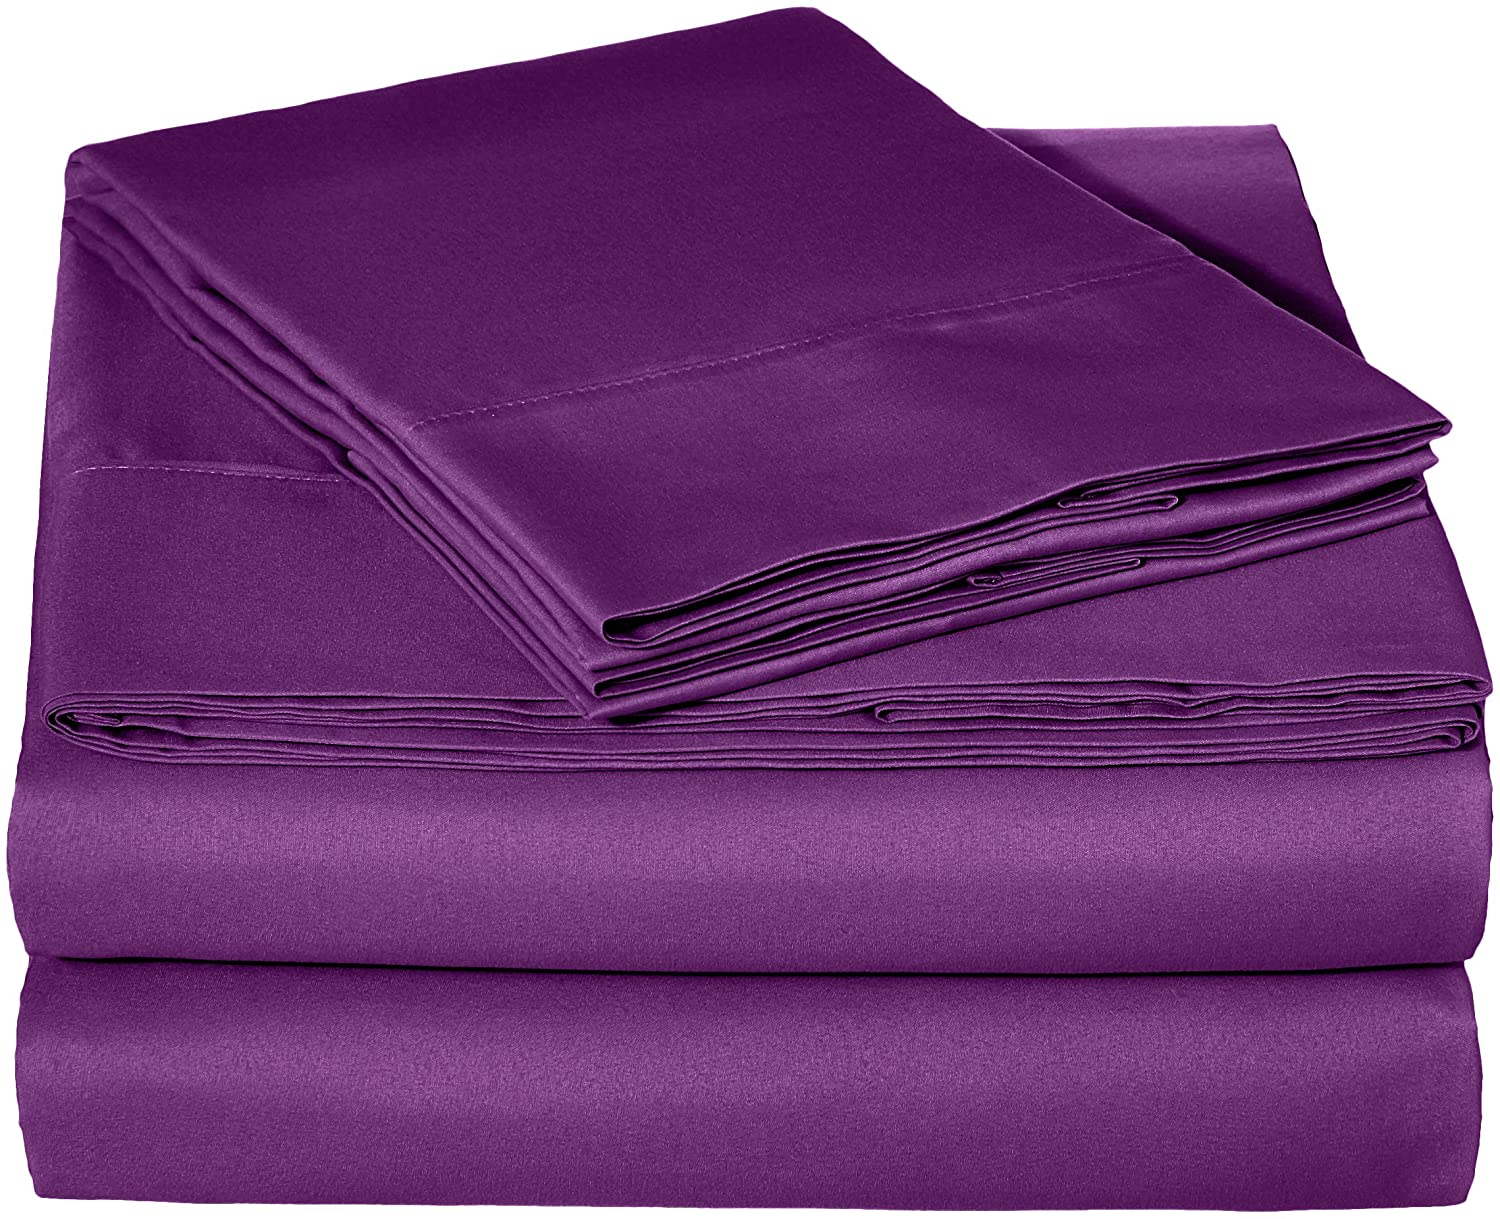 "AmazonBasics Lightweight Super Soft Easy Care Microfiber Sheet Set with 16"" Deep Pockets - King, Plum"